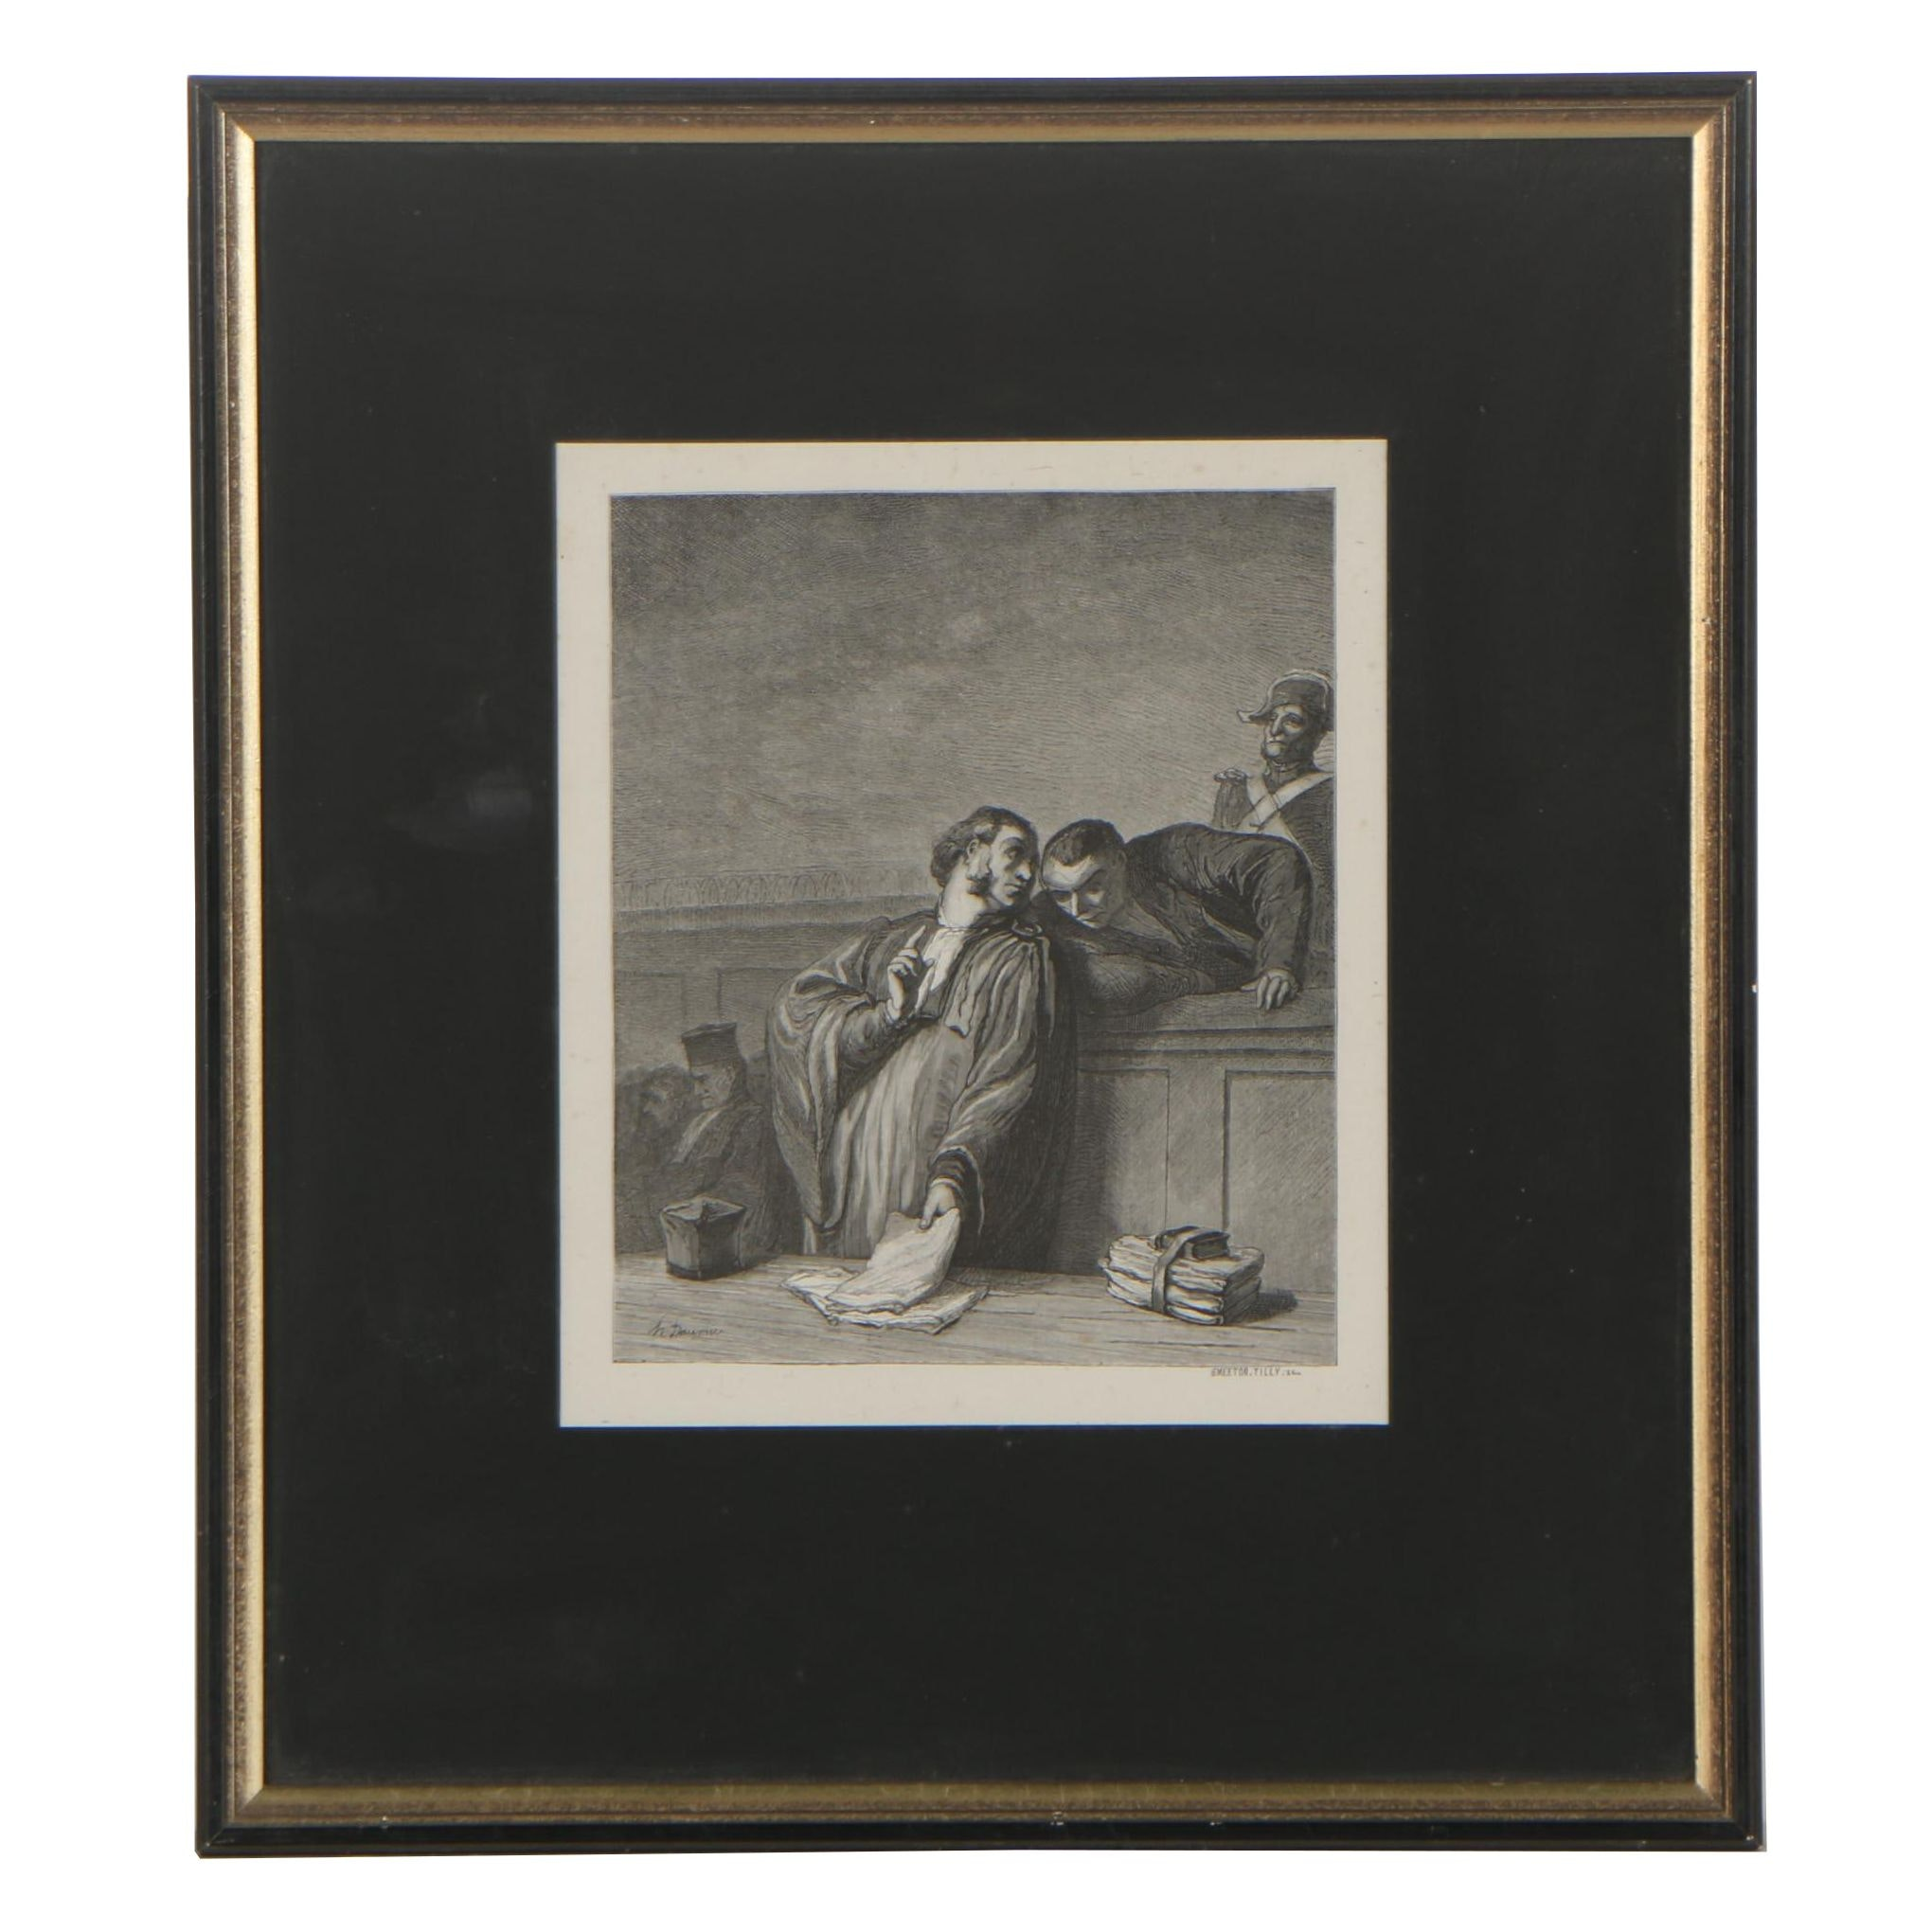 Burn Smeeton and Auguste Tilly  Wood Engraving after Honoré Daumier